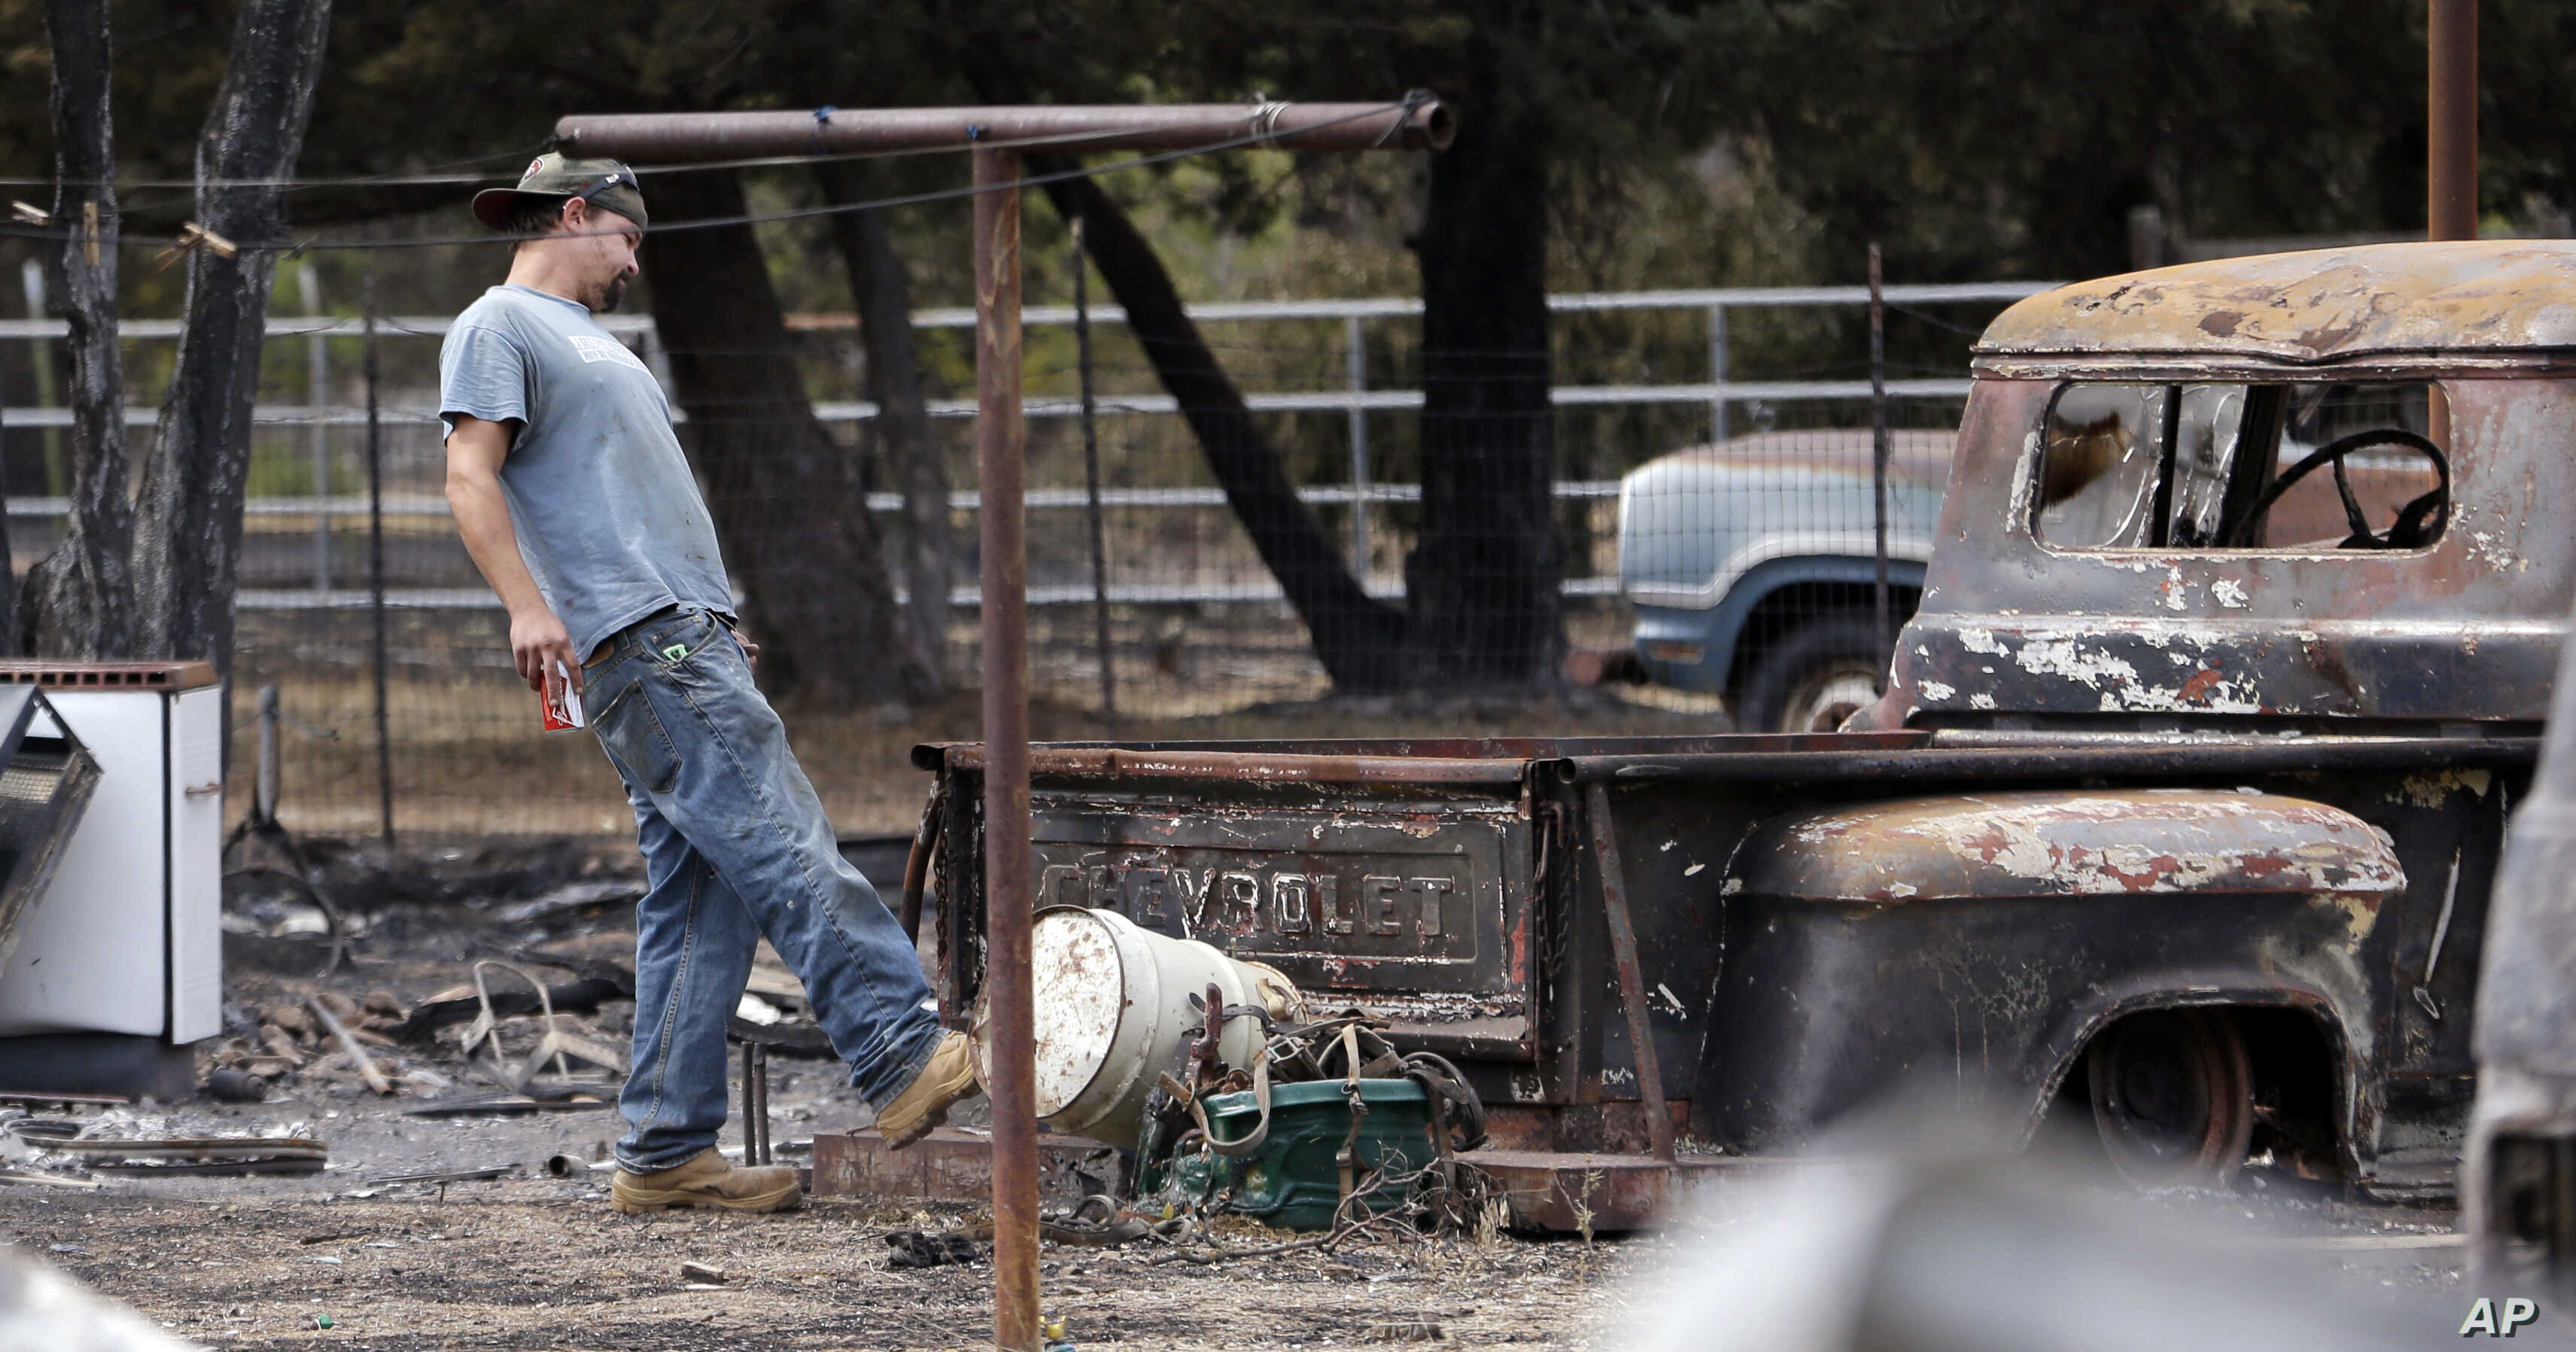 Gary Herrin angrily kicks at an old Chevrolet pickup truck destroyed in a wildfire several days earlier as he visits the family home for the first time since it burned down, Sept. 15, 2015, in Middletown, Calif.